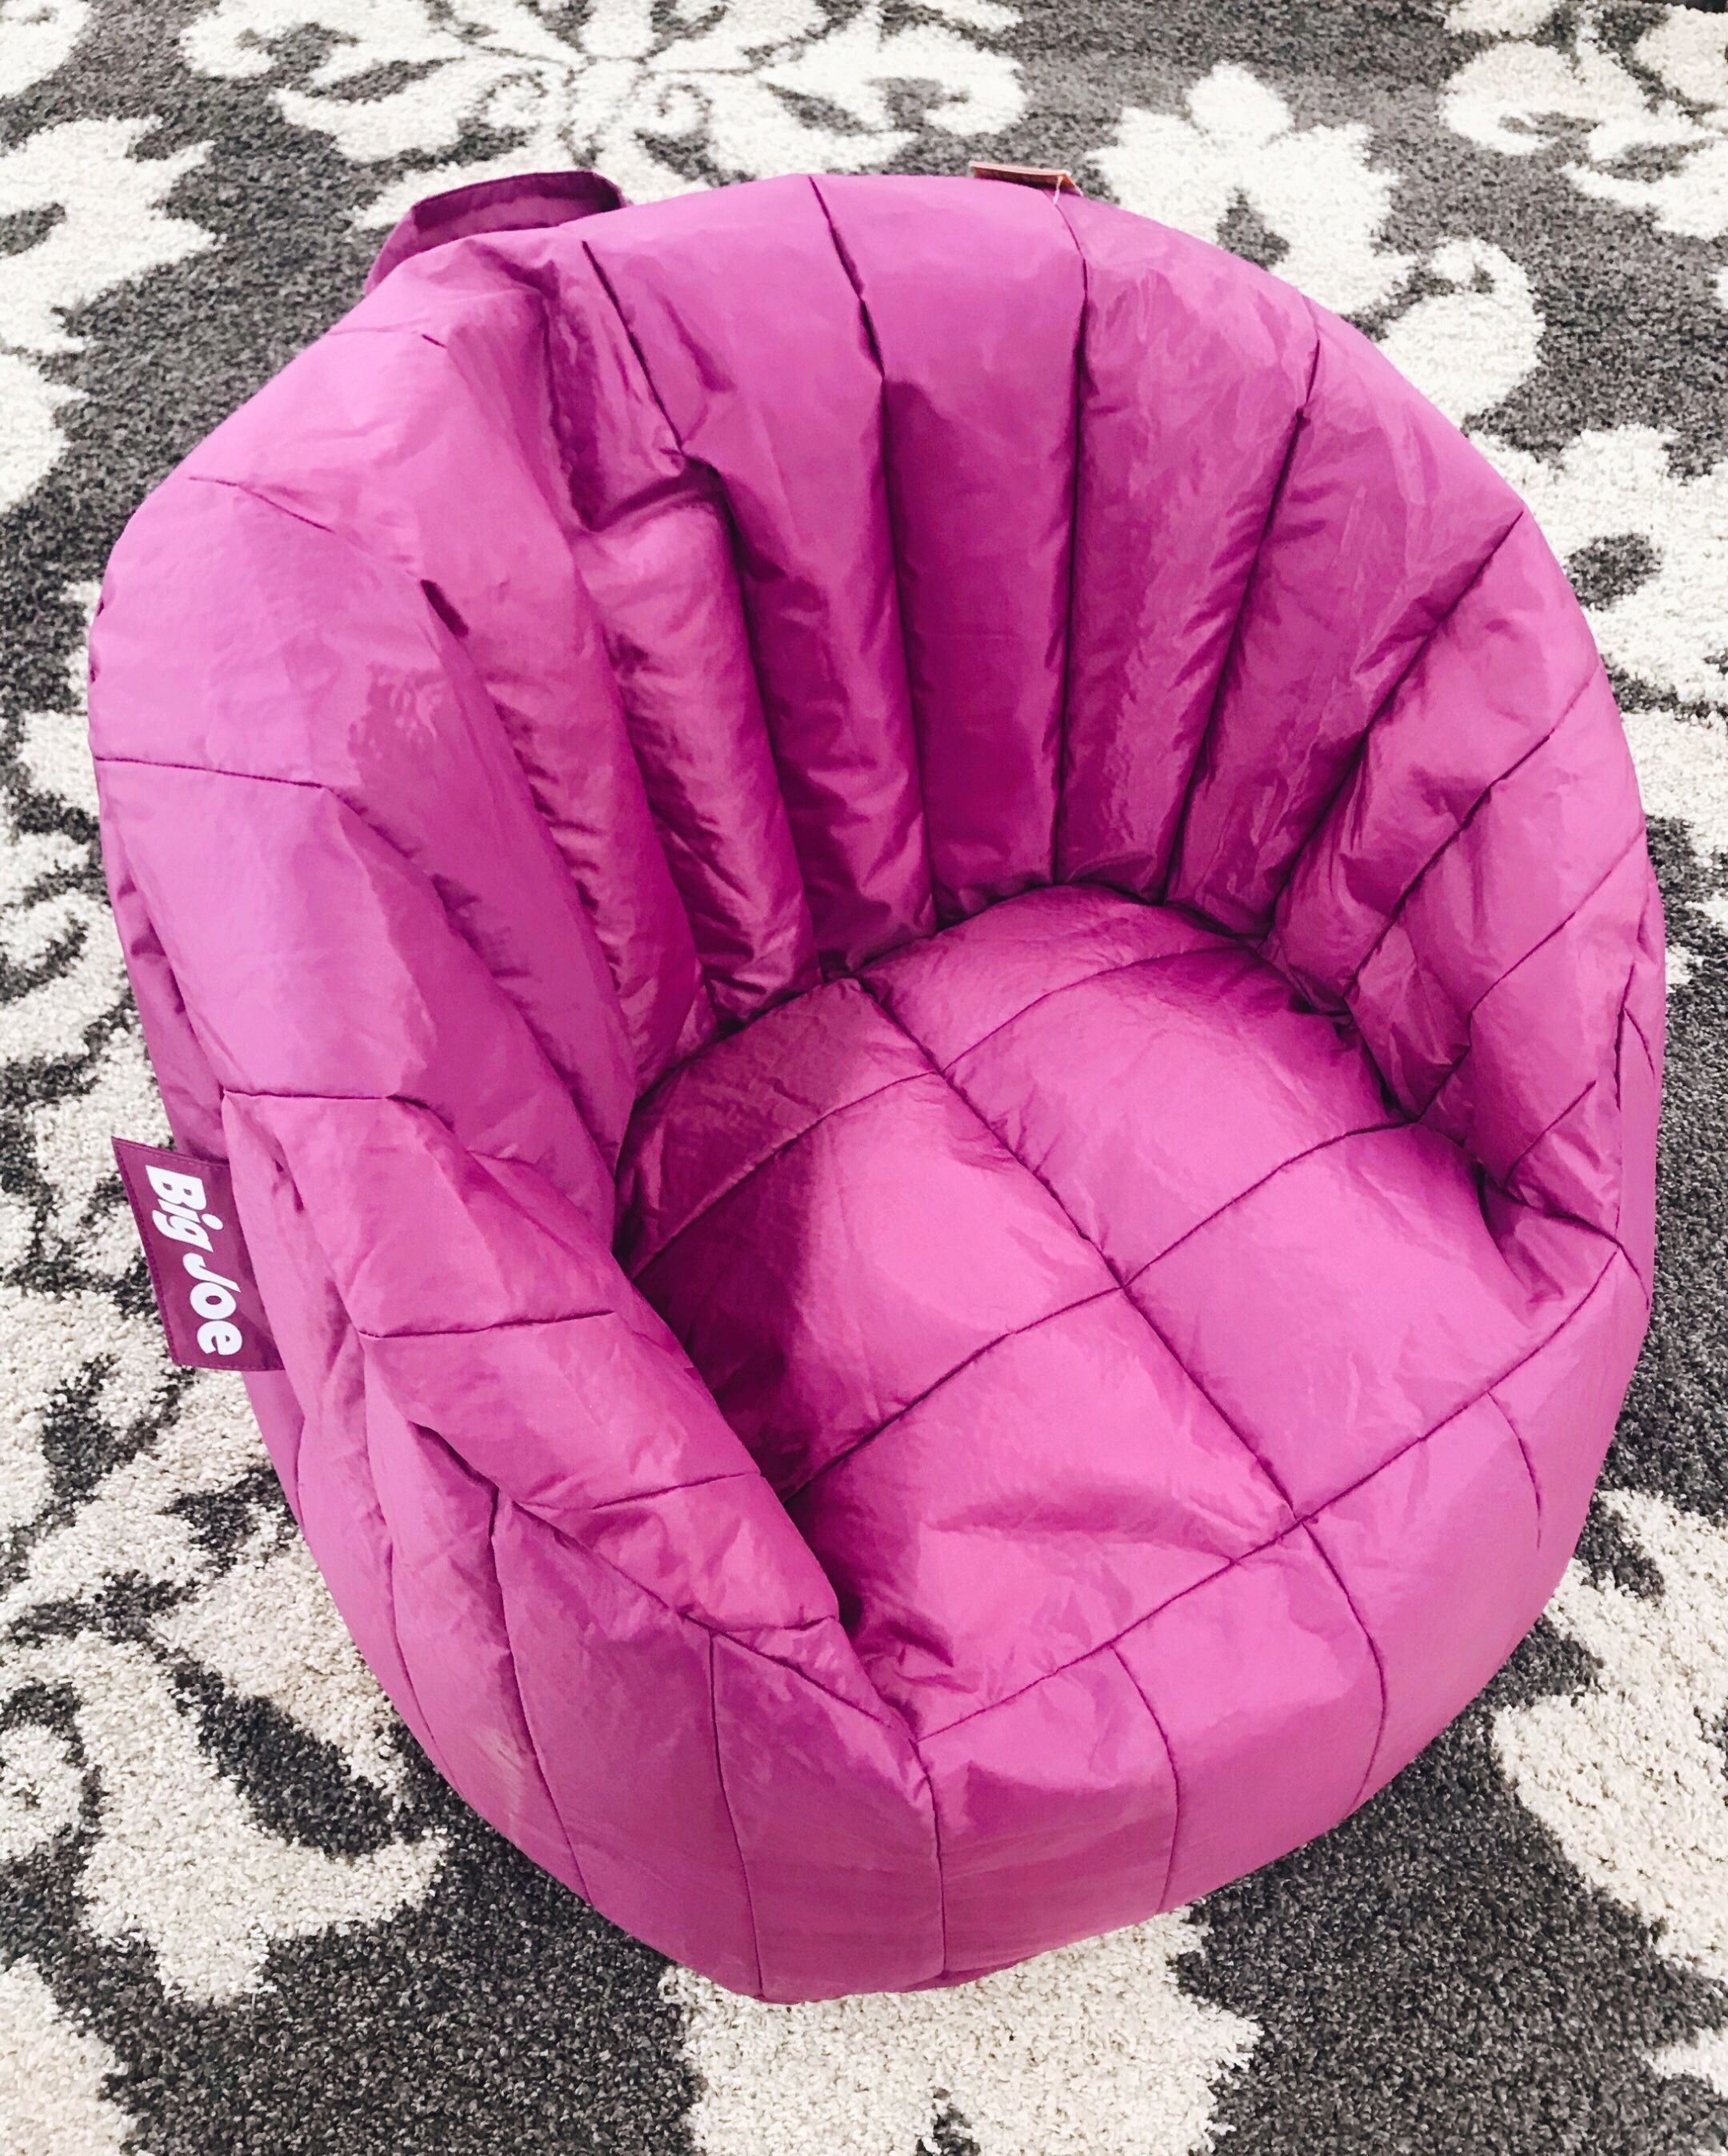 Big Joe Chairs Are Made With Smartmax Fabric Which Is Tough Waterproof Stain Resistant And Easy To Clean Off Comfy Stylish Seating Bean Bag Chair Furniture